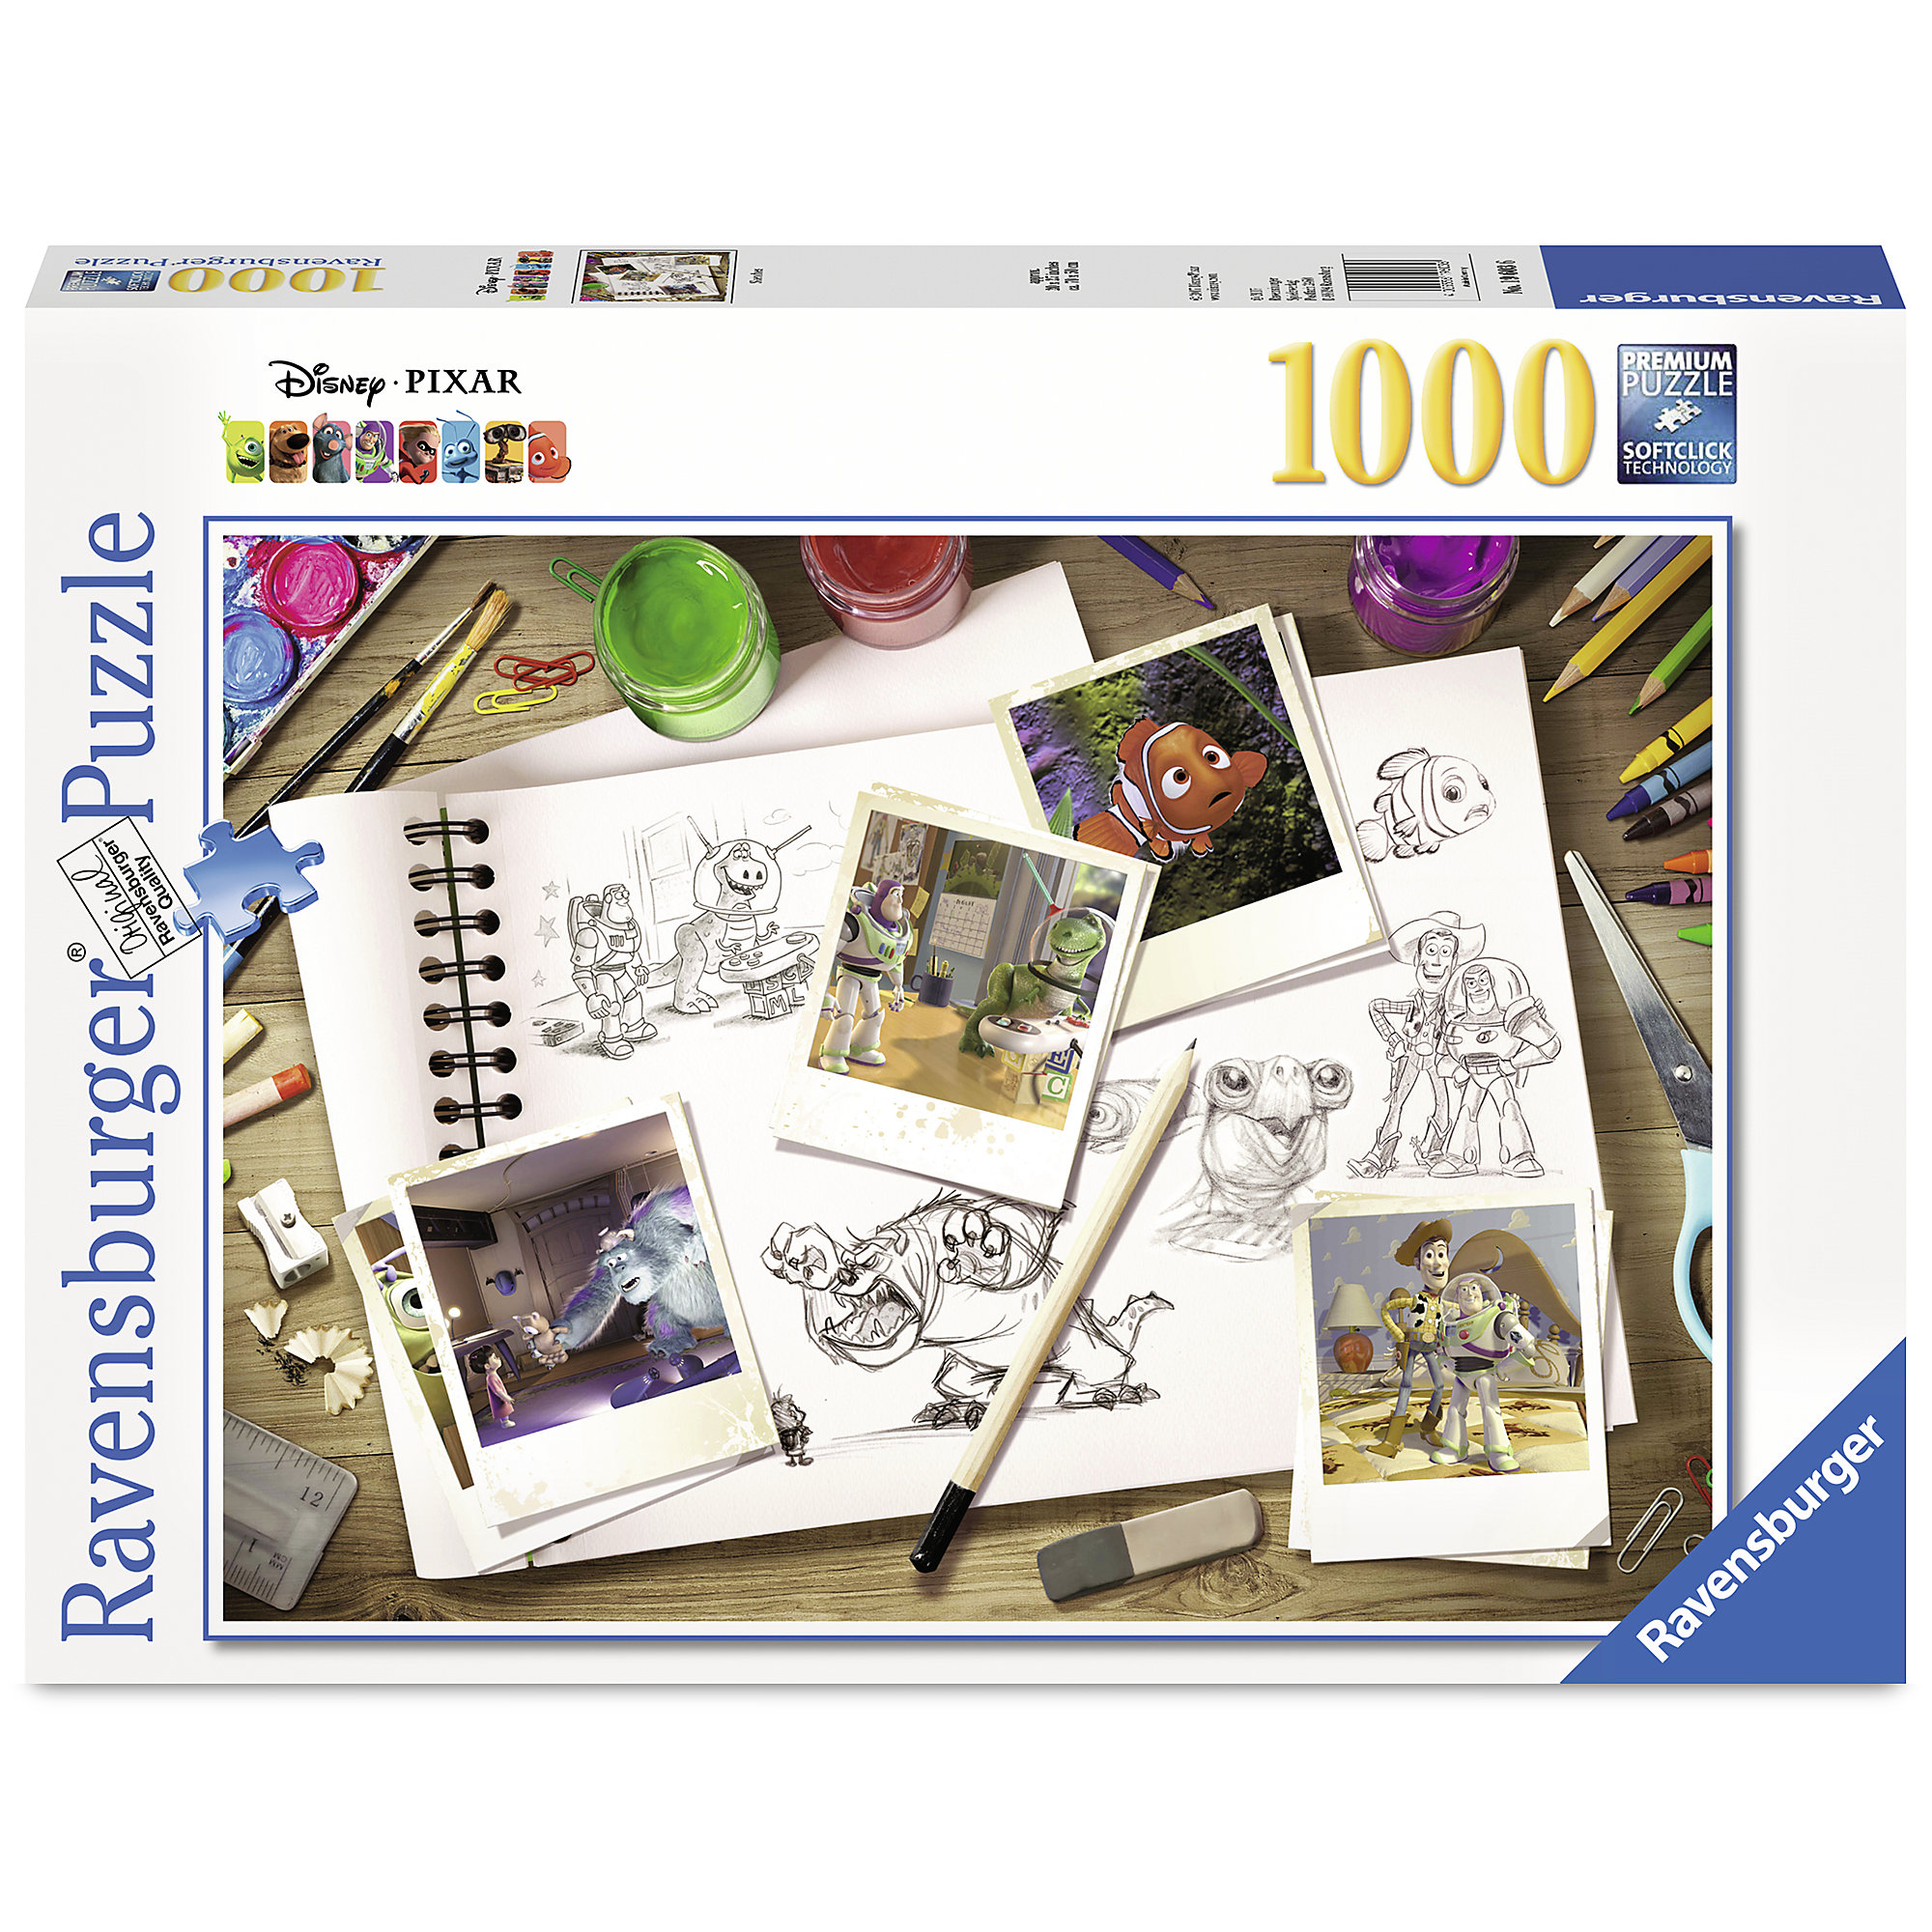 PIXAR Sketch Puzzle by Ravensburger